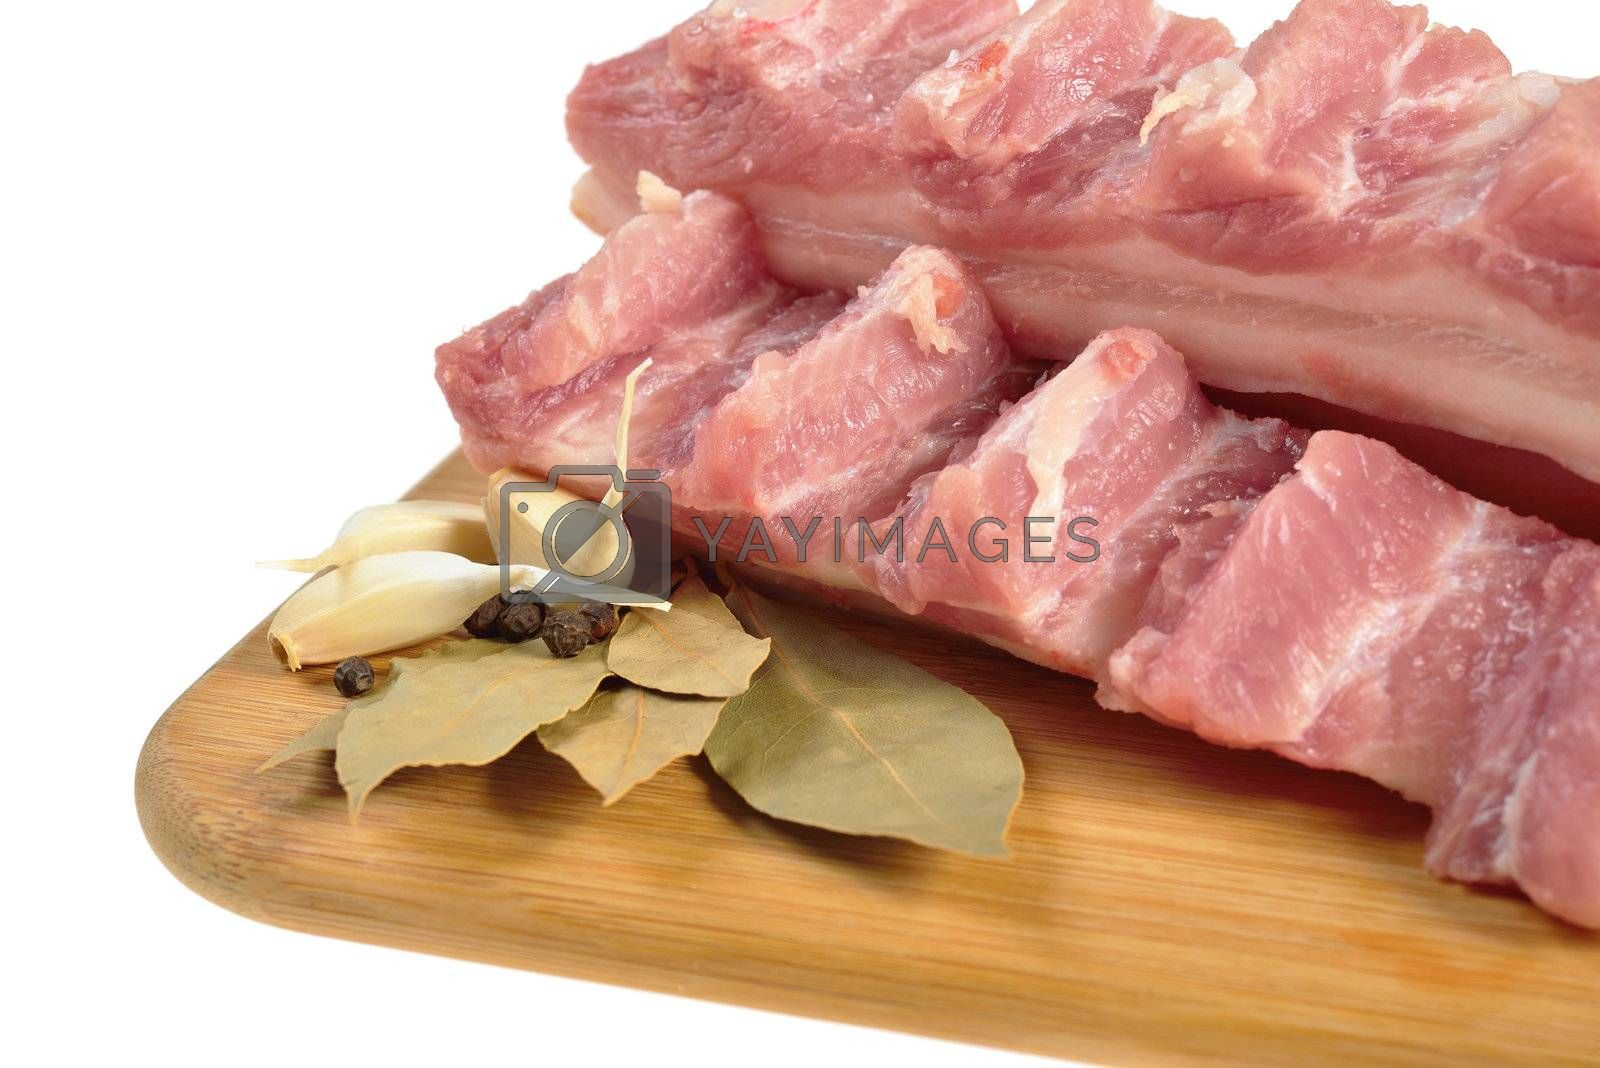 Raw bacon with ribs on a wooden cutting board. Isolated on white.